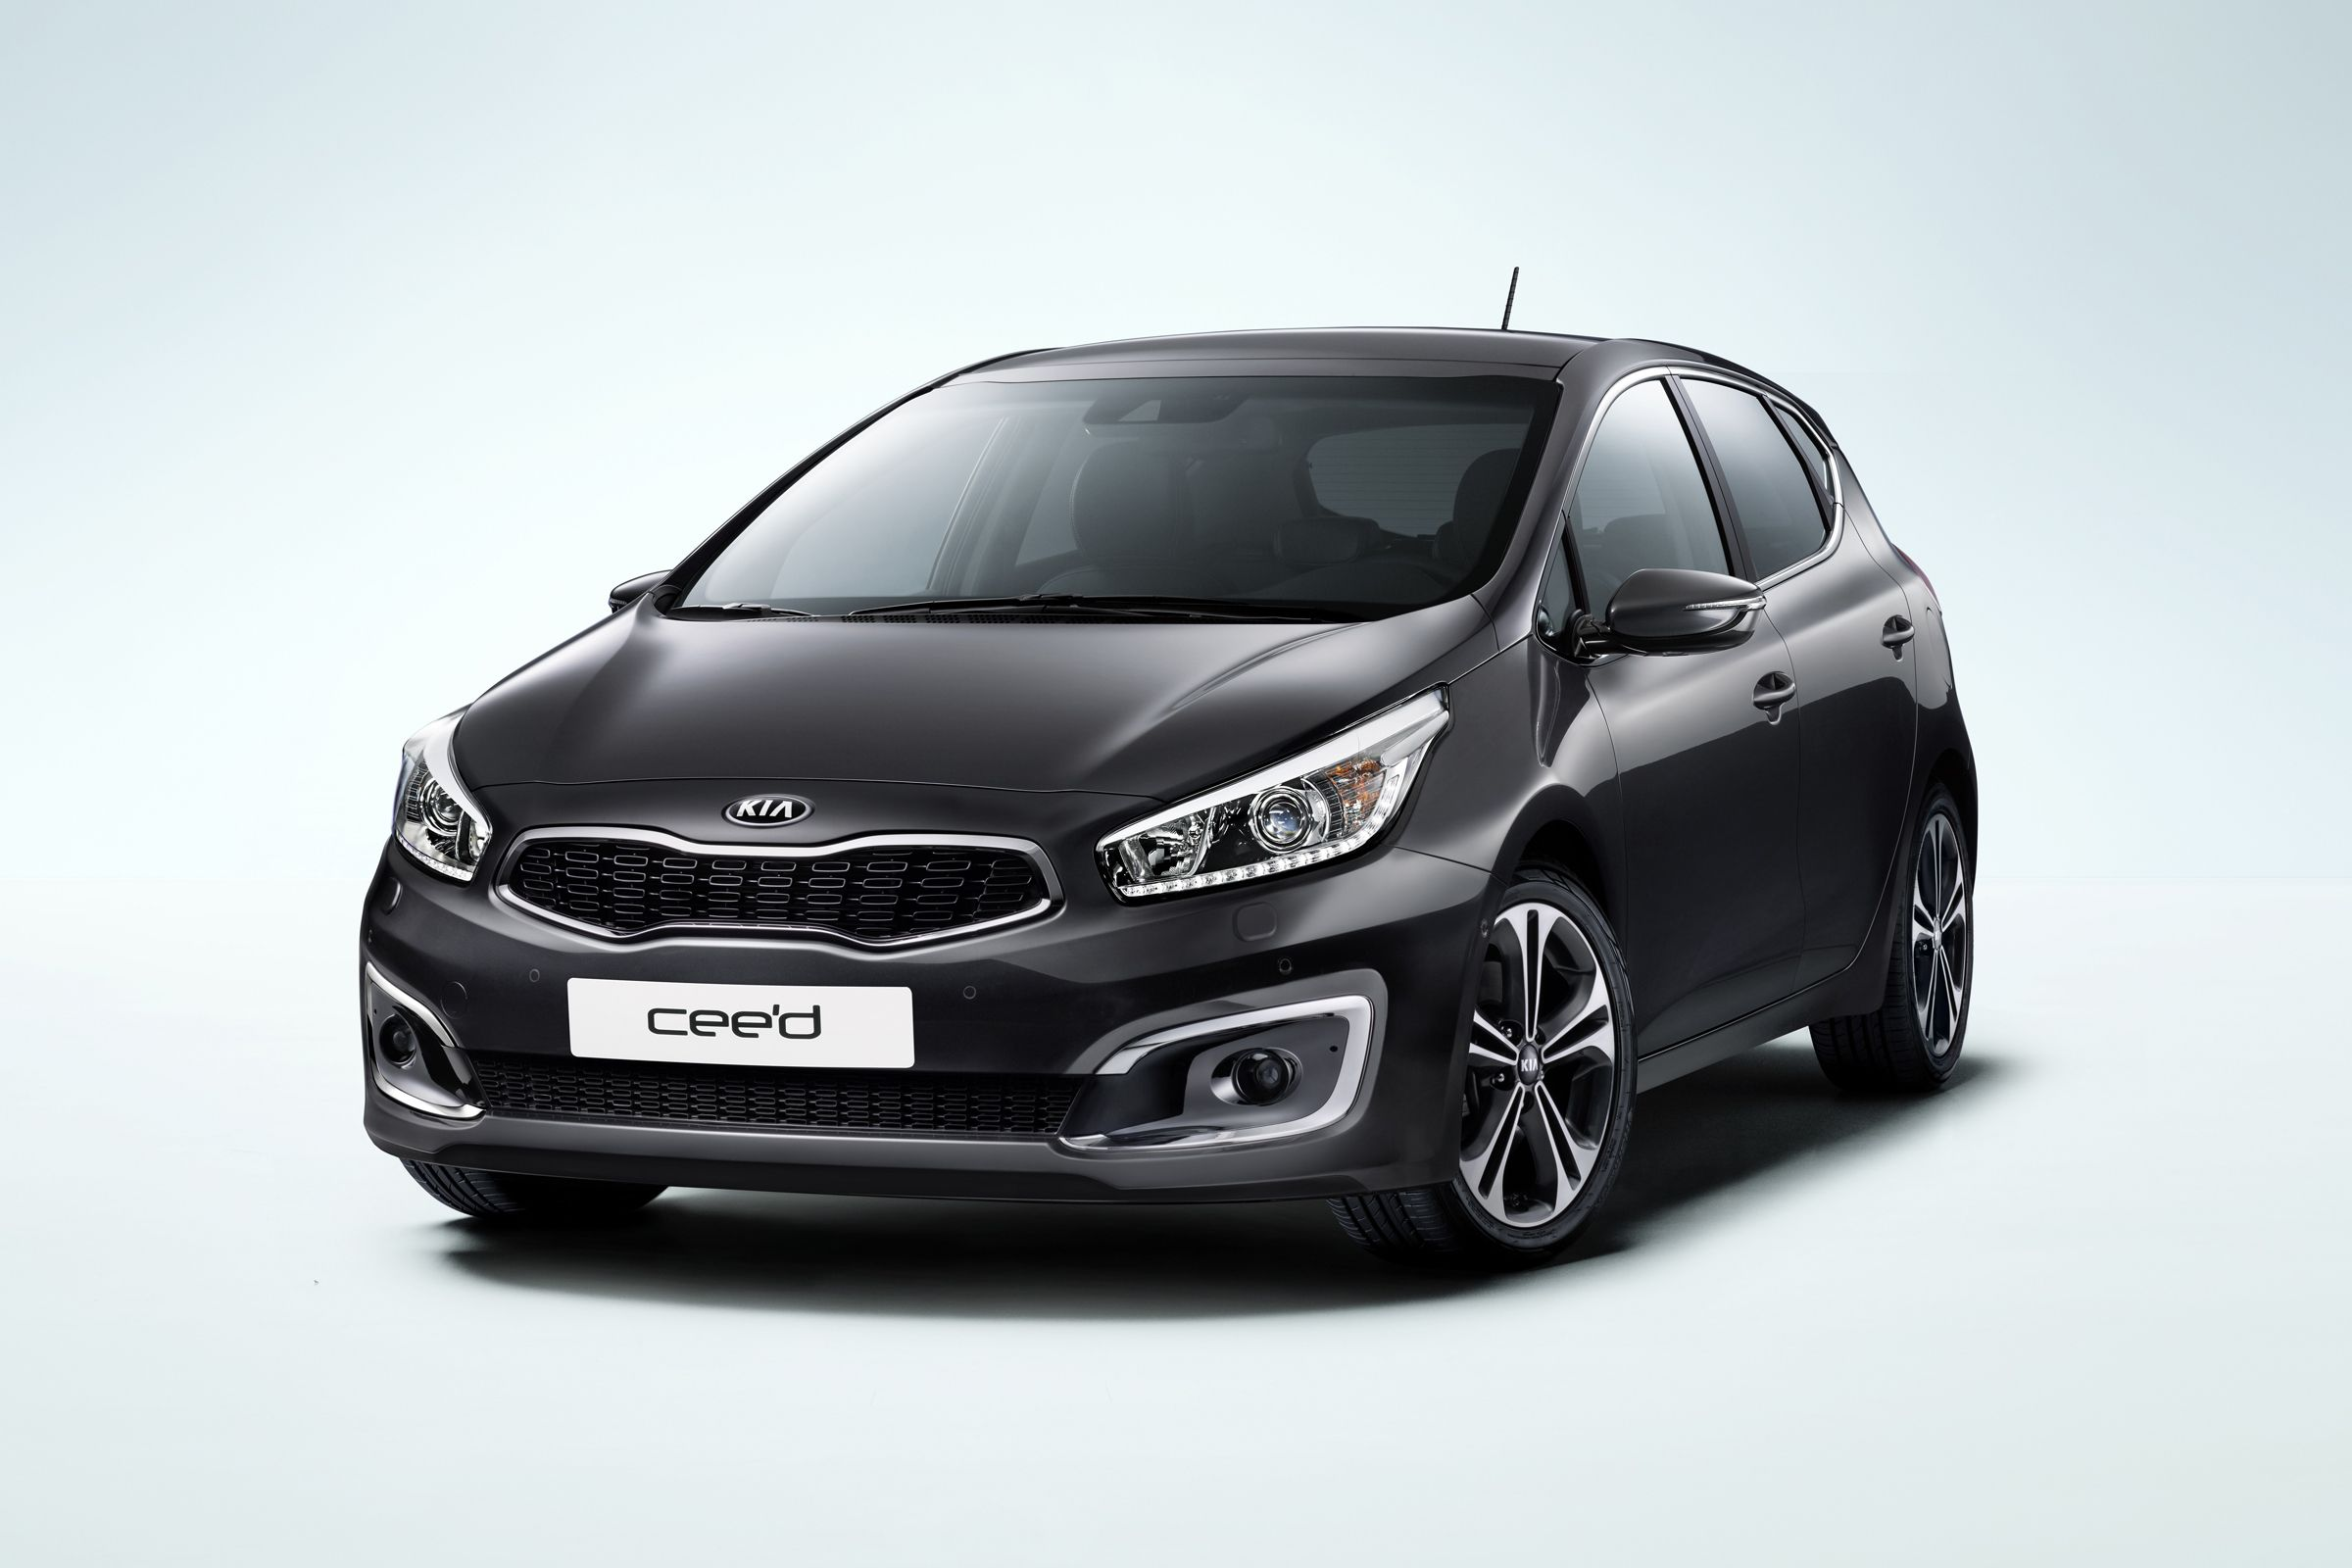 The New Kia Cee'd Specifications Including Appearance